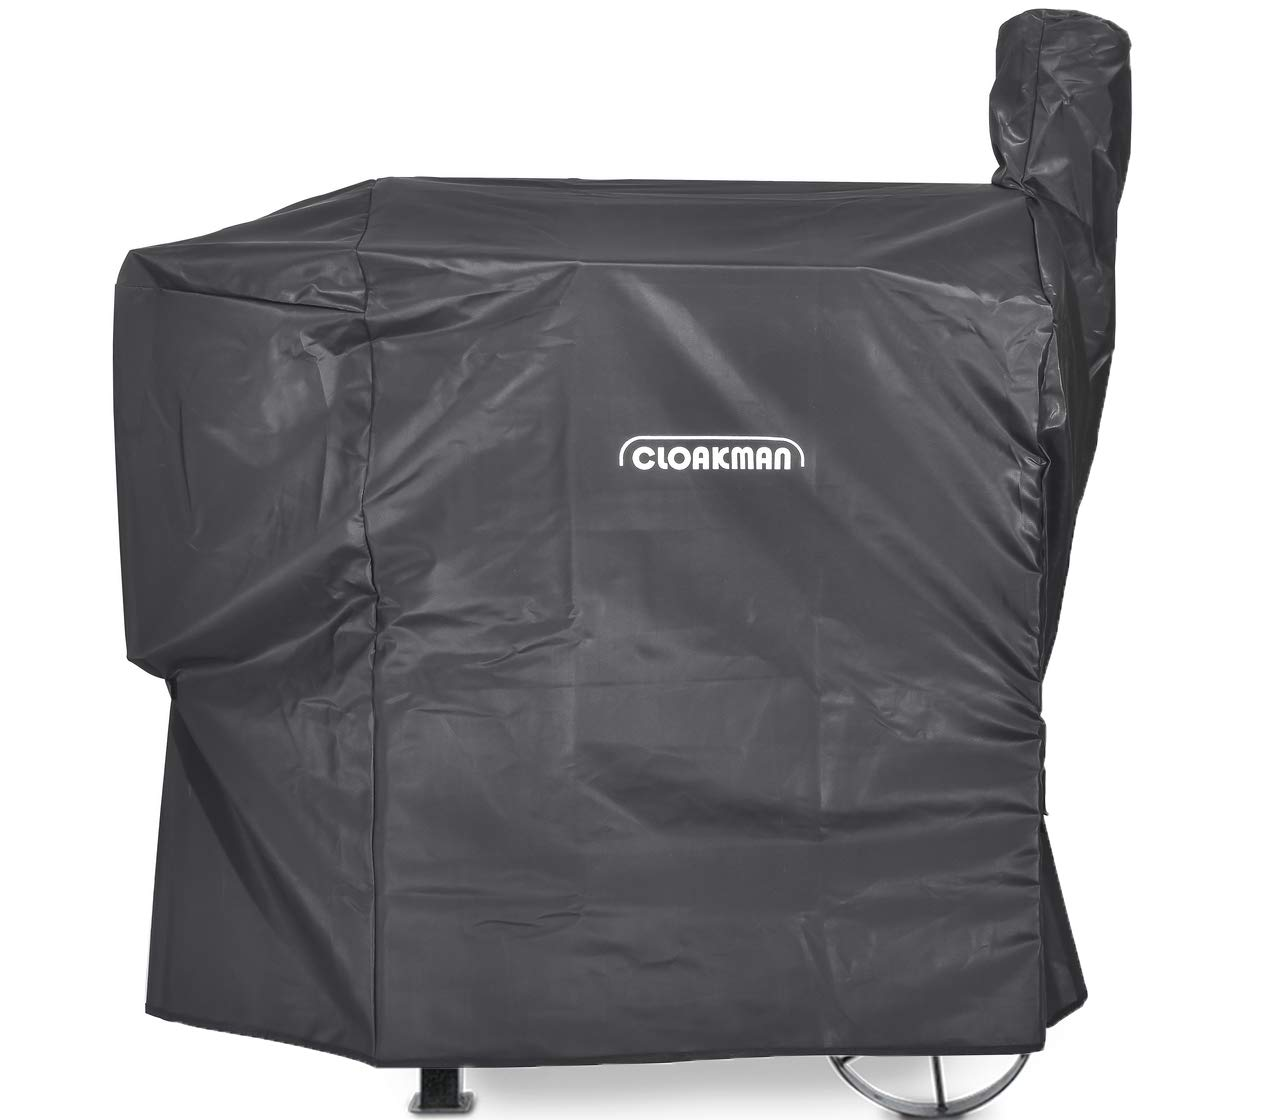 Cloakman Premium Heavy-Duty Grill Cover fits Pit Boss 820 820FB 71820 Pellet Smoker Grills (NOT for 820D with Side Tray) by Cloakman